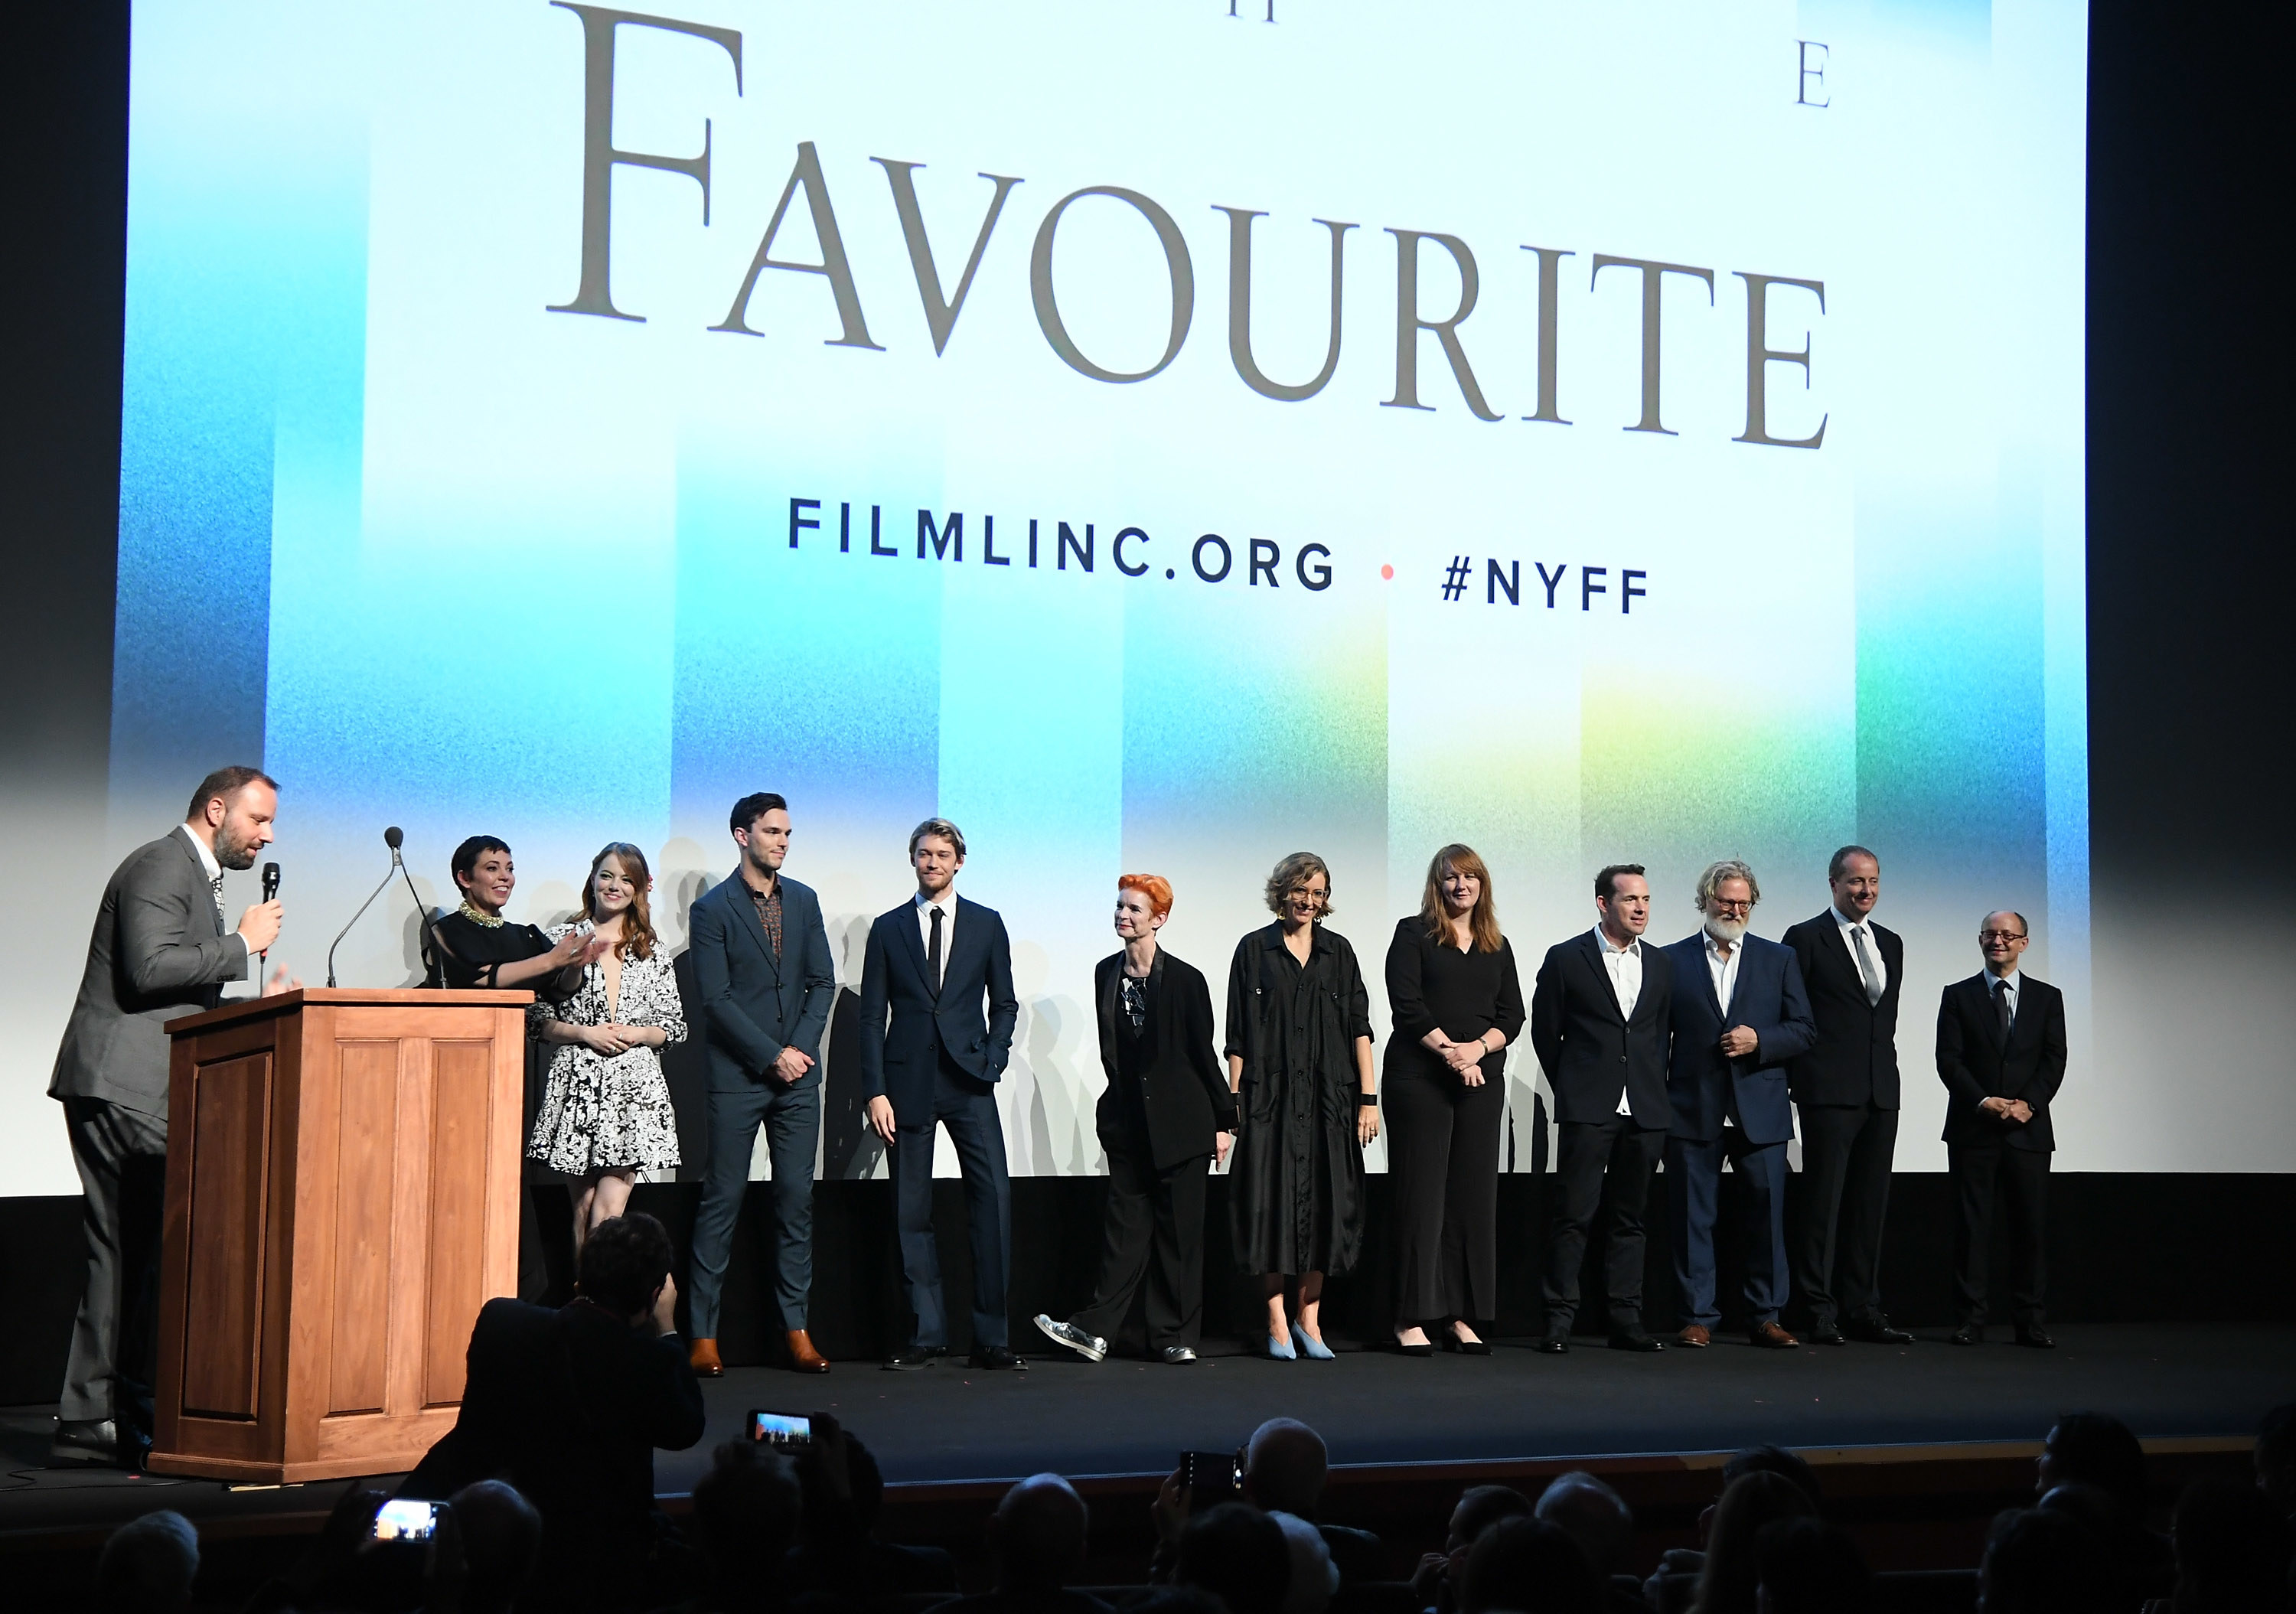 The cast of The Favourite standing on stage